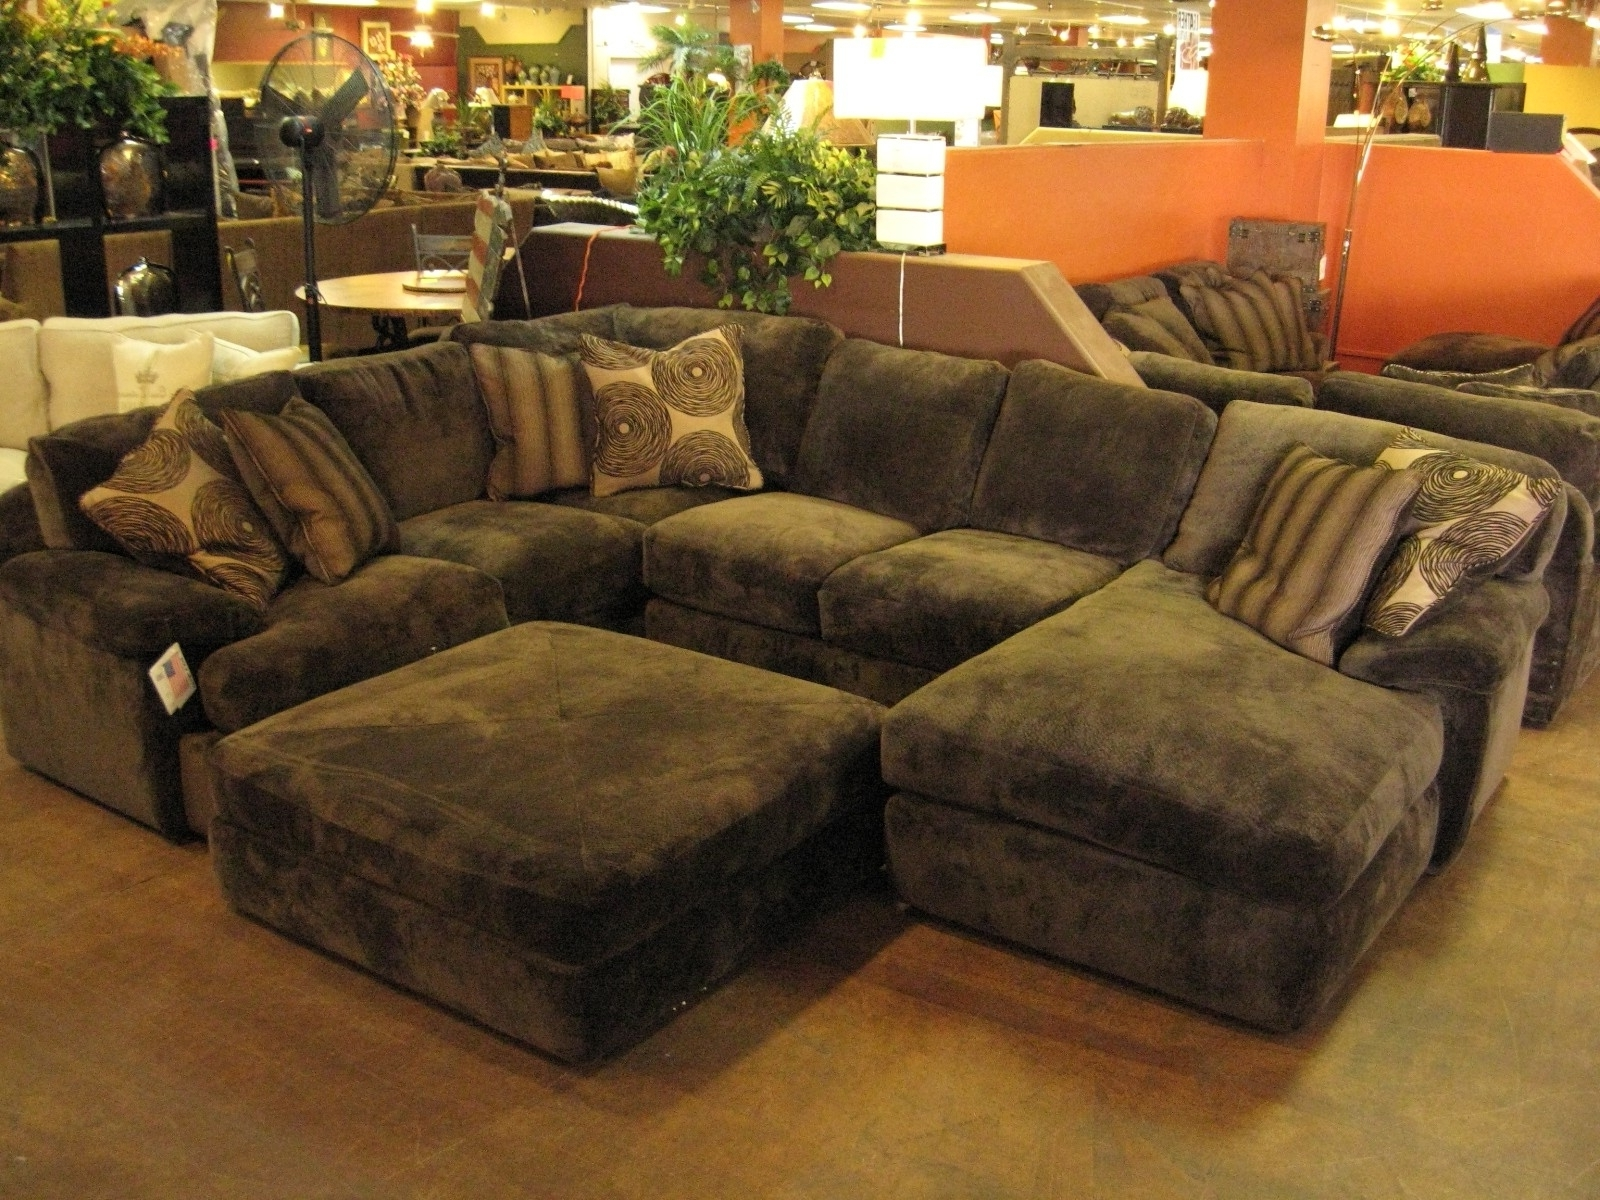 Most Recently Released Best Zane Sectional Sofa For Sofas Tulsa Ok With Decor Home Sofas For Tulsa Sectional Sofas (View 7 of 20)